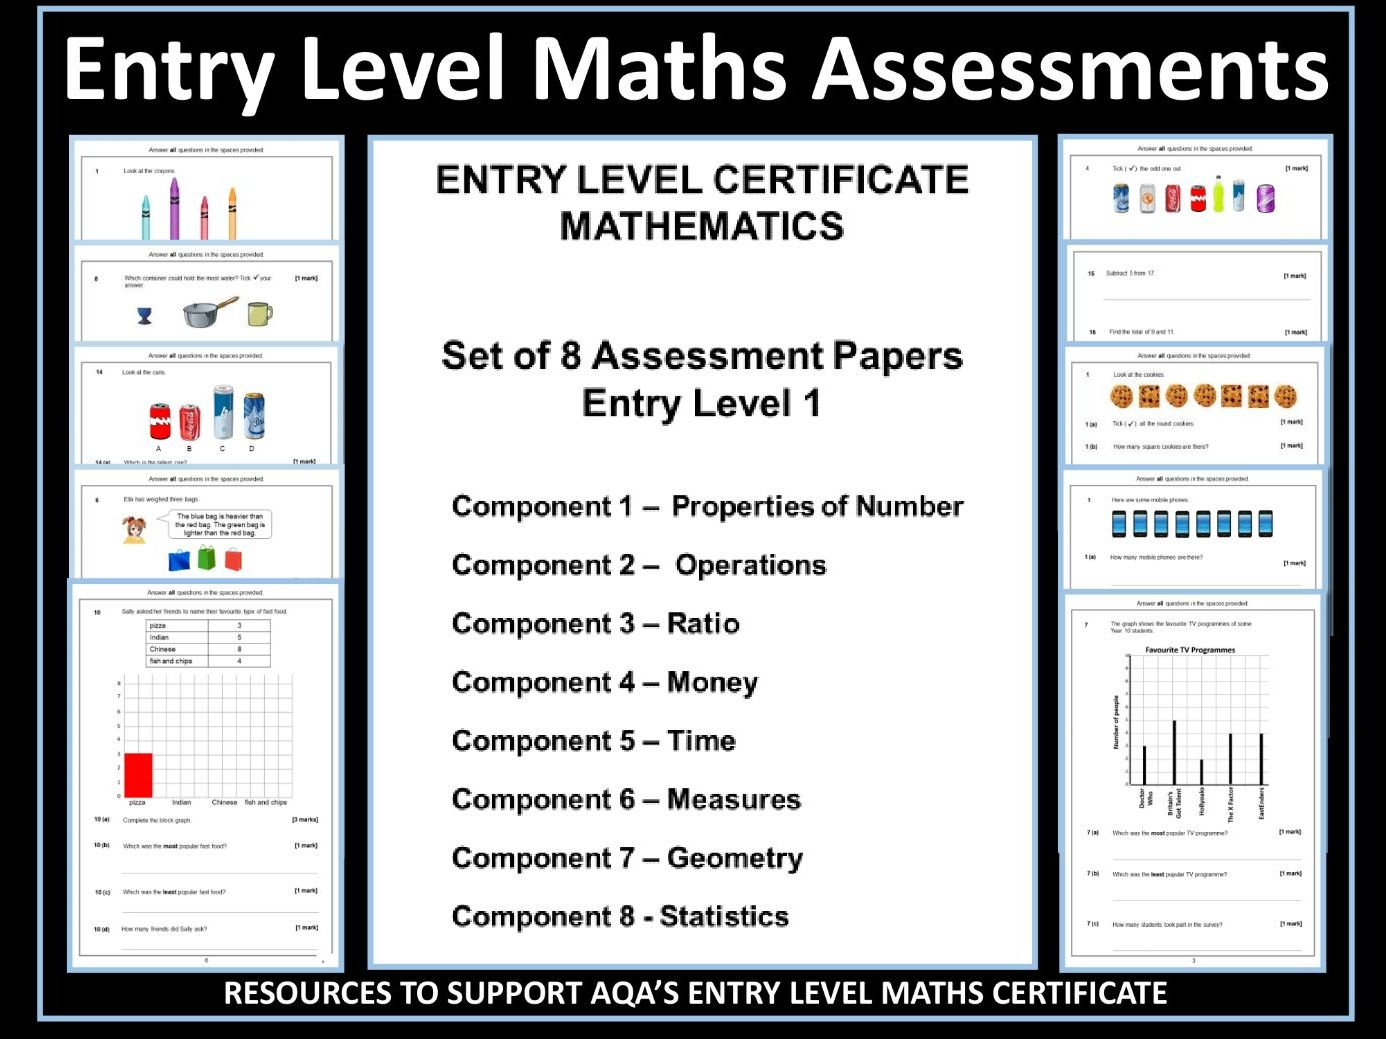 AQA Entry Level 1 Maths Assessments